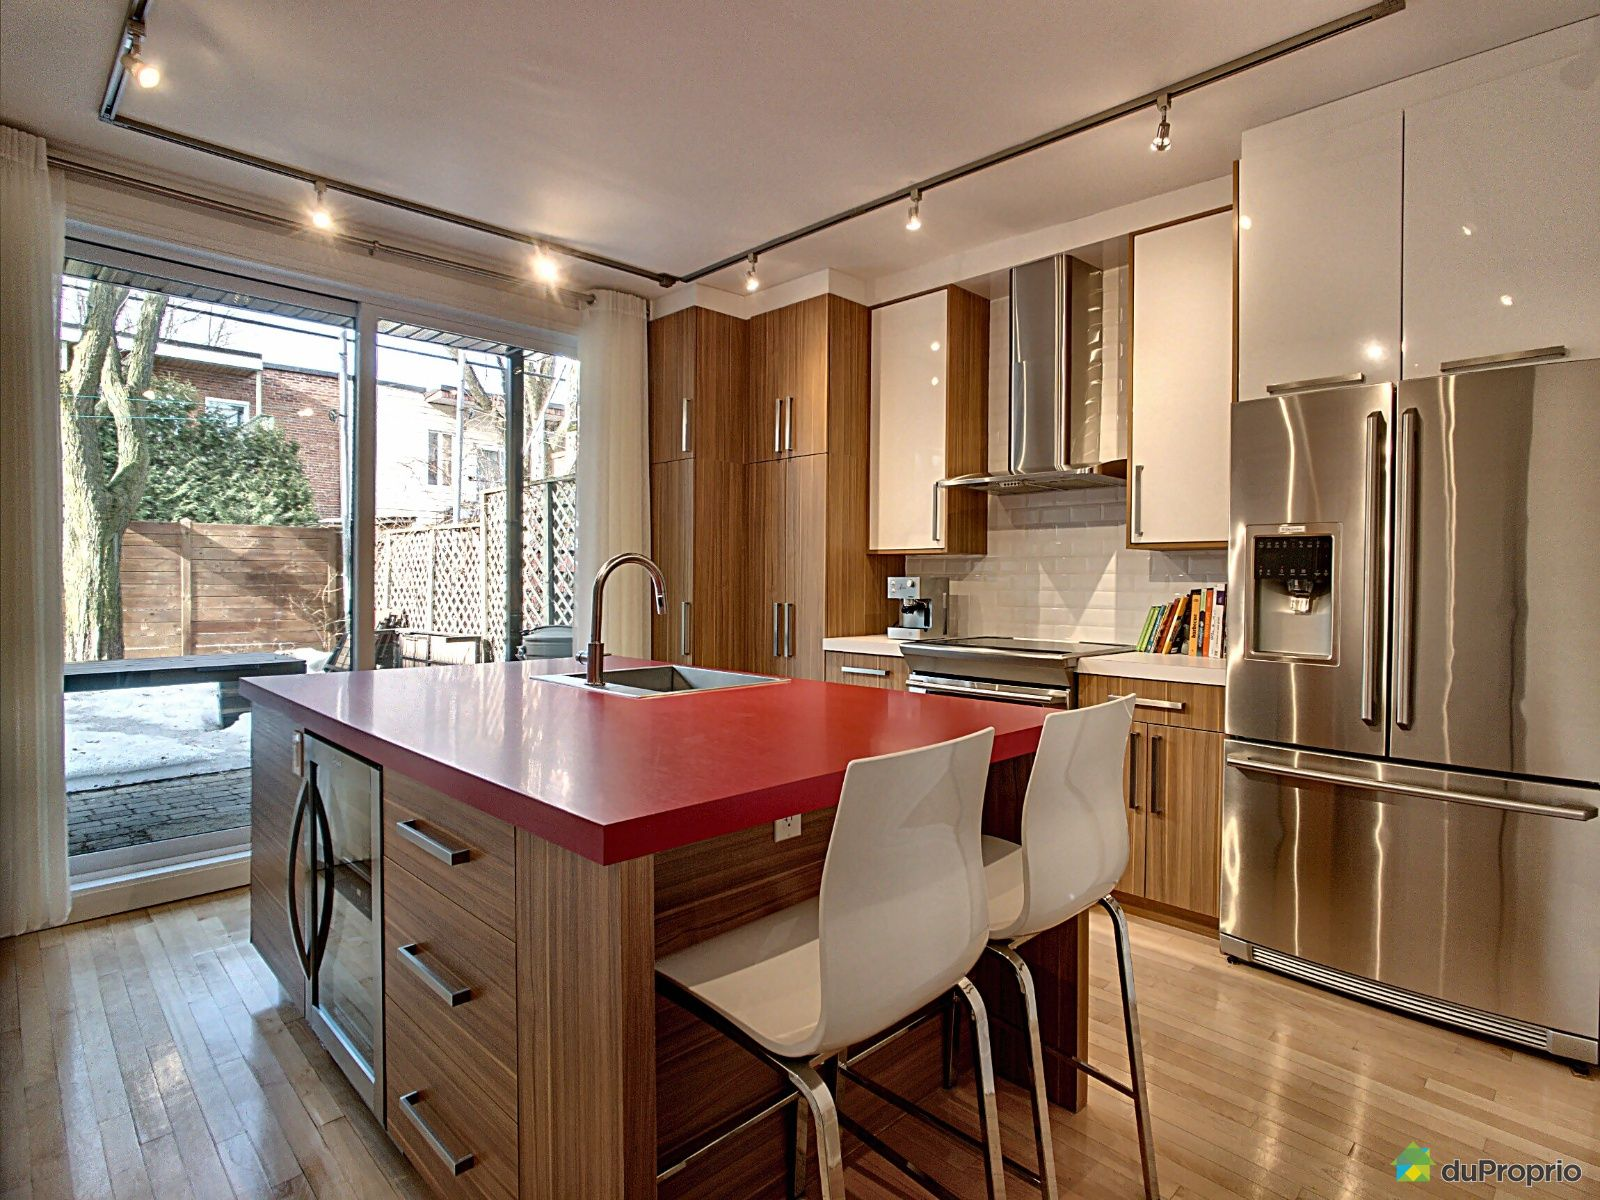 Kitchen - 4626 rue de Bordeaux, Le Plateau-Mont-Royal for sale